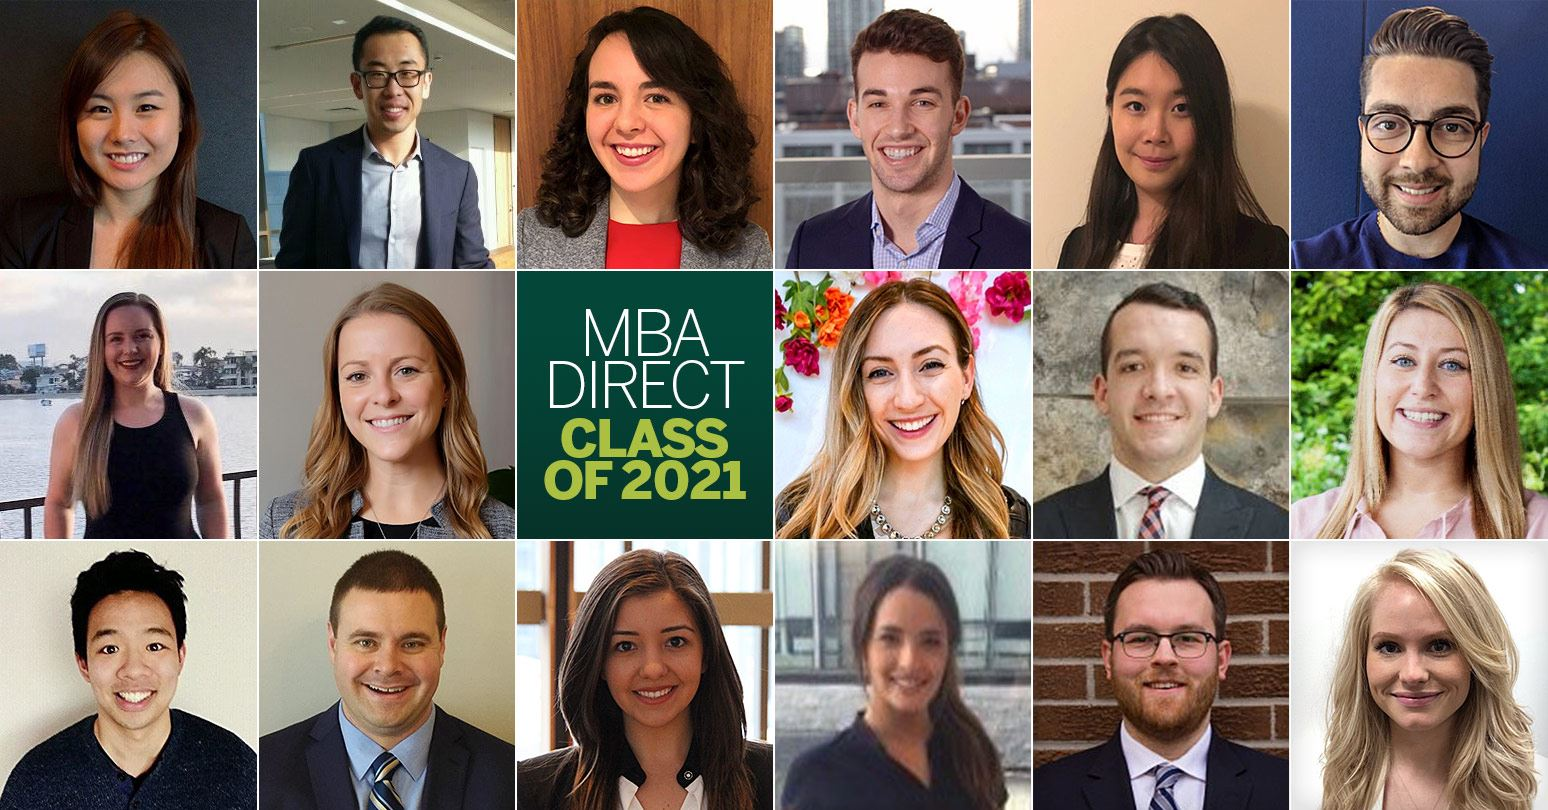 Welcome to the MBA Direct Class of 2021